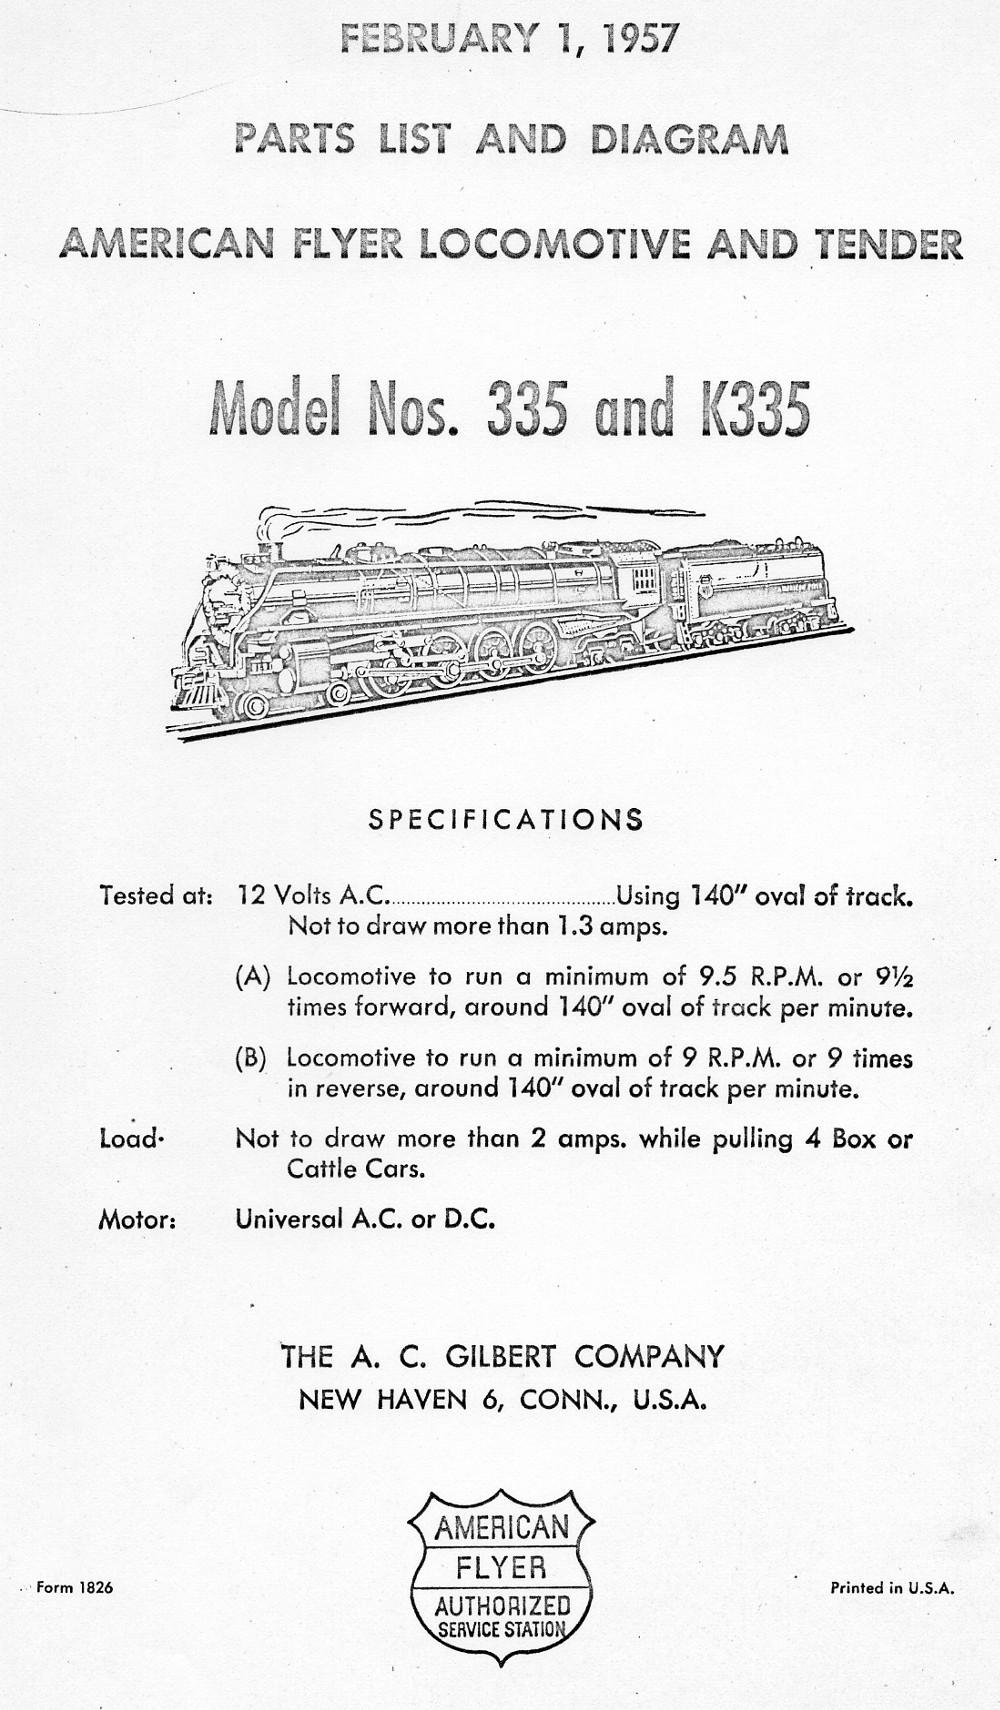 American Flyer Locomotive and Tender 335 & K335 Parts List and Diagram - Page 1